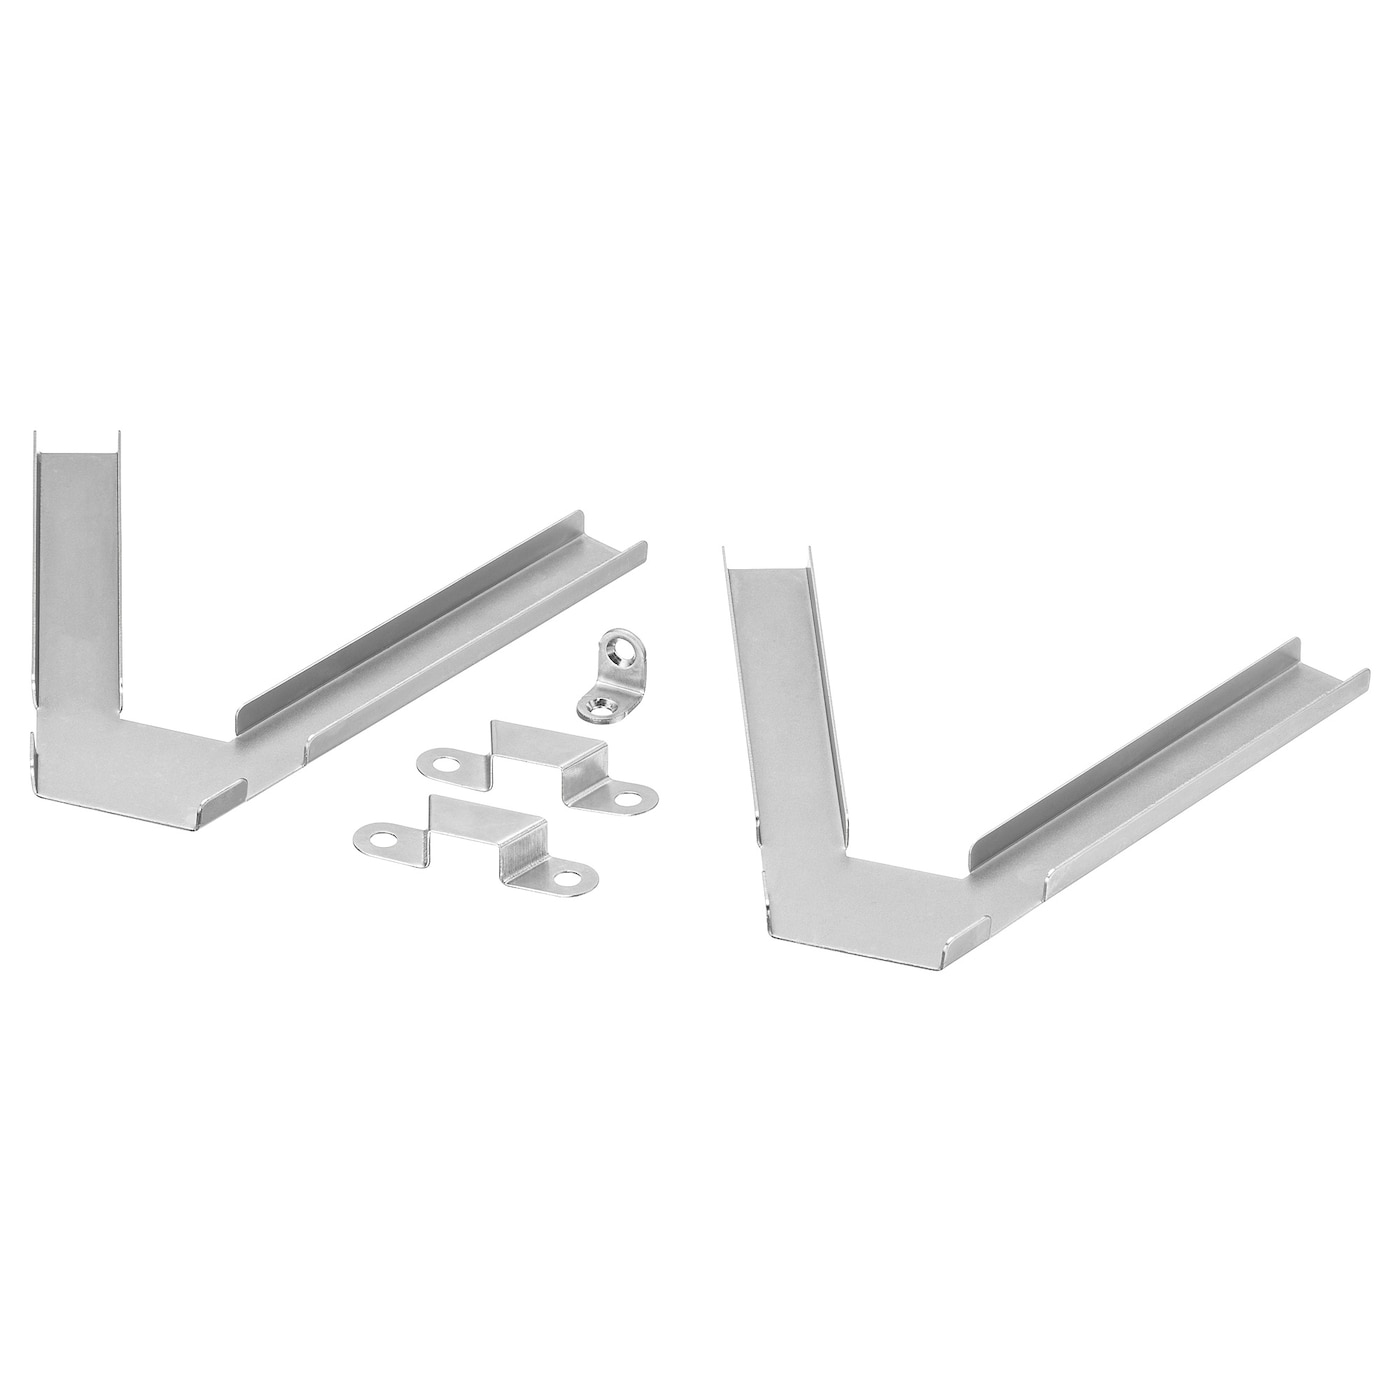 IKEA BILLY corner fittings